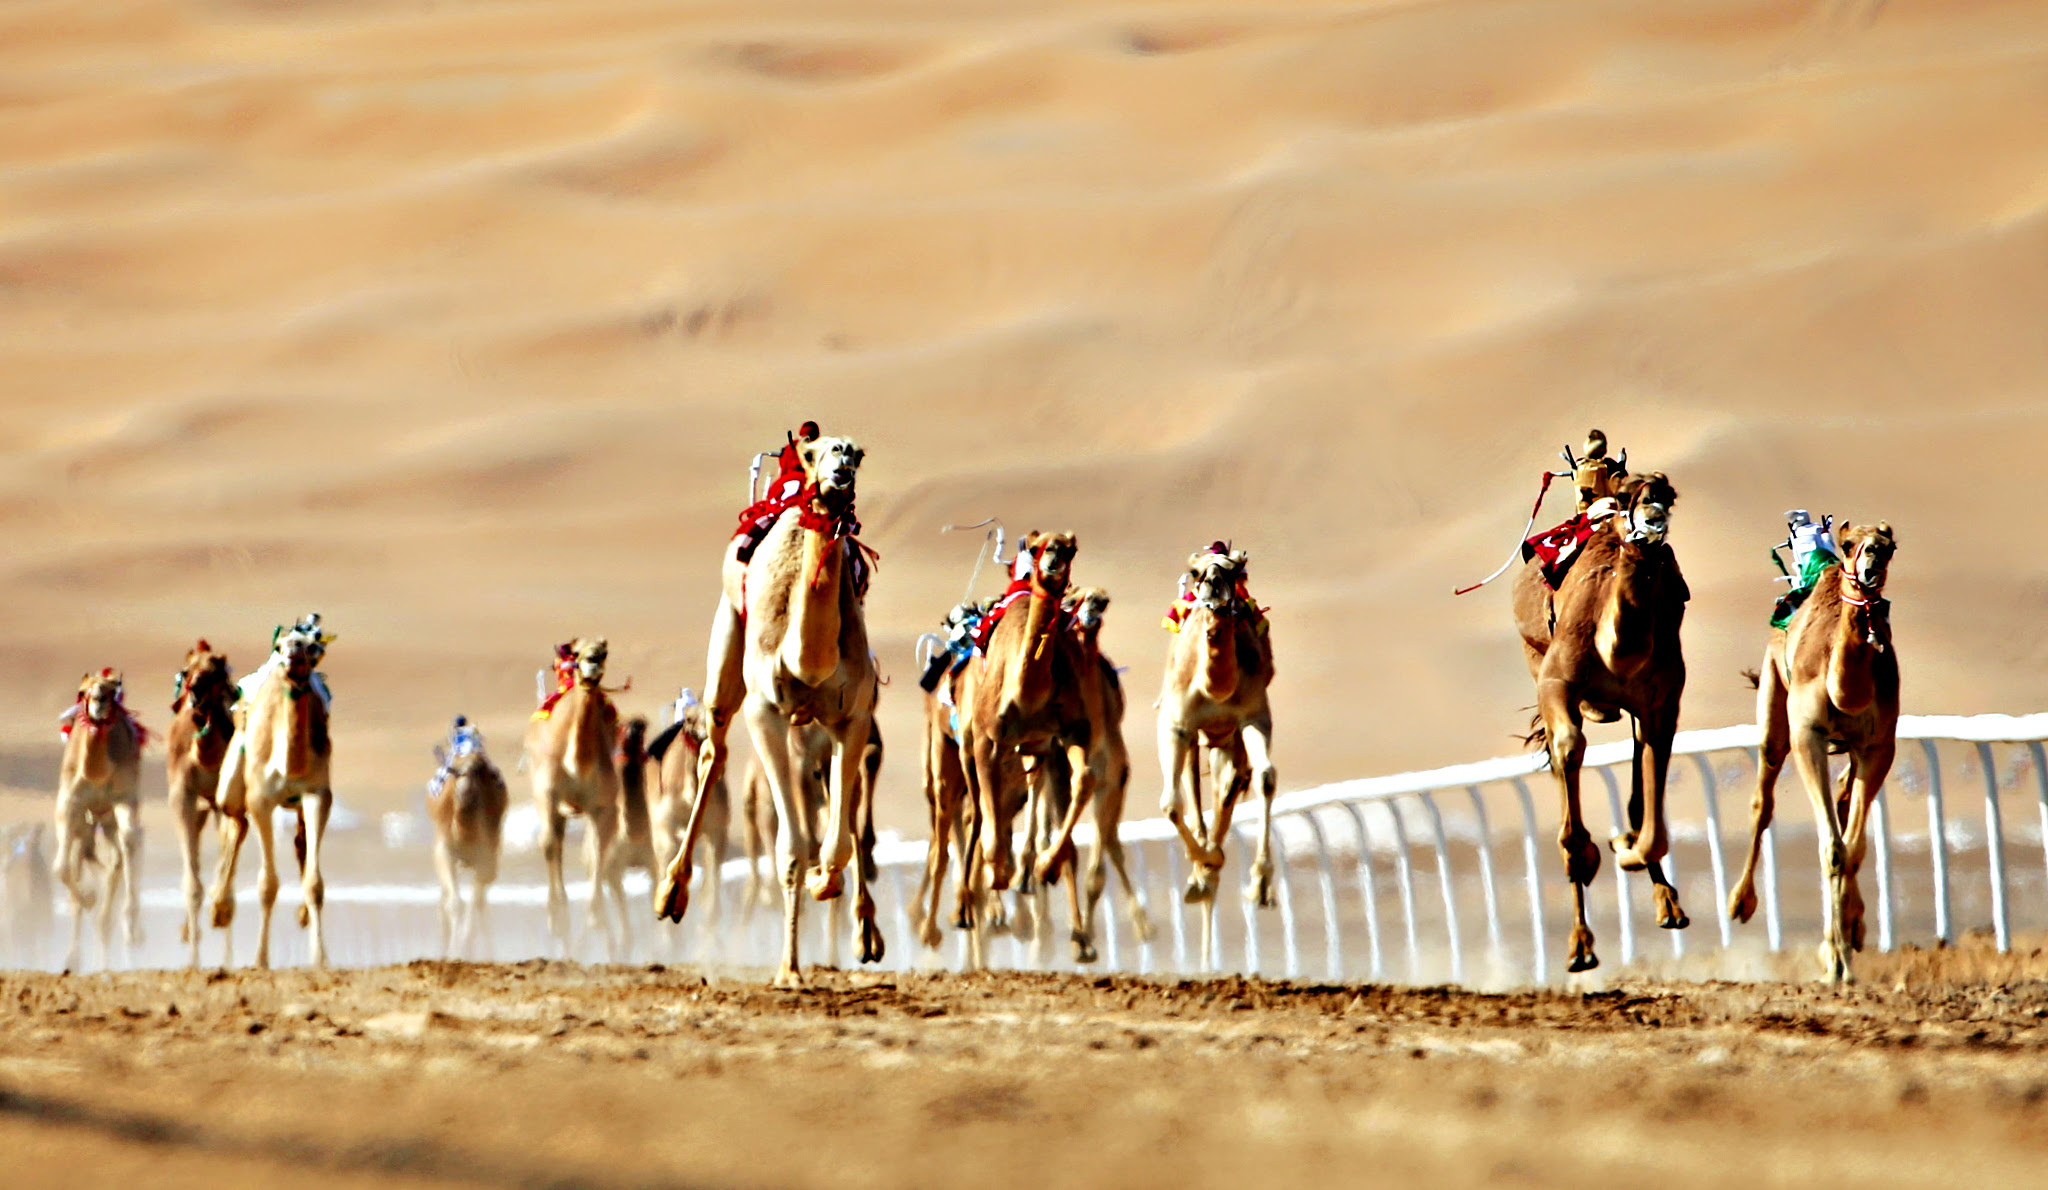 Camels compete during the Liwa 2016 Moreeb Dune Festival on January 5, 2016, in the Liwa desert, 250 kilometres west of the Gulf emirate of Abu Dhabi. The festival, which attracts participants from around the Gulf region, includes a variety of races (cars, bikes, falcons, camels and horses) or other activities aimed at promoting the country's folklore.